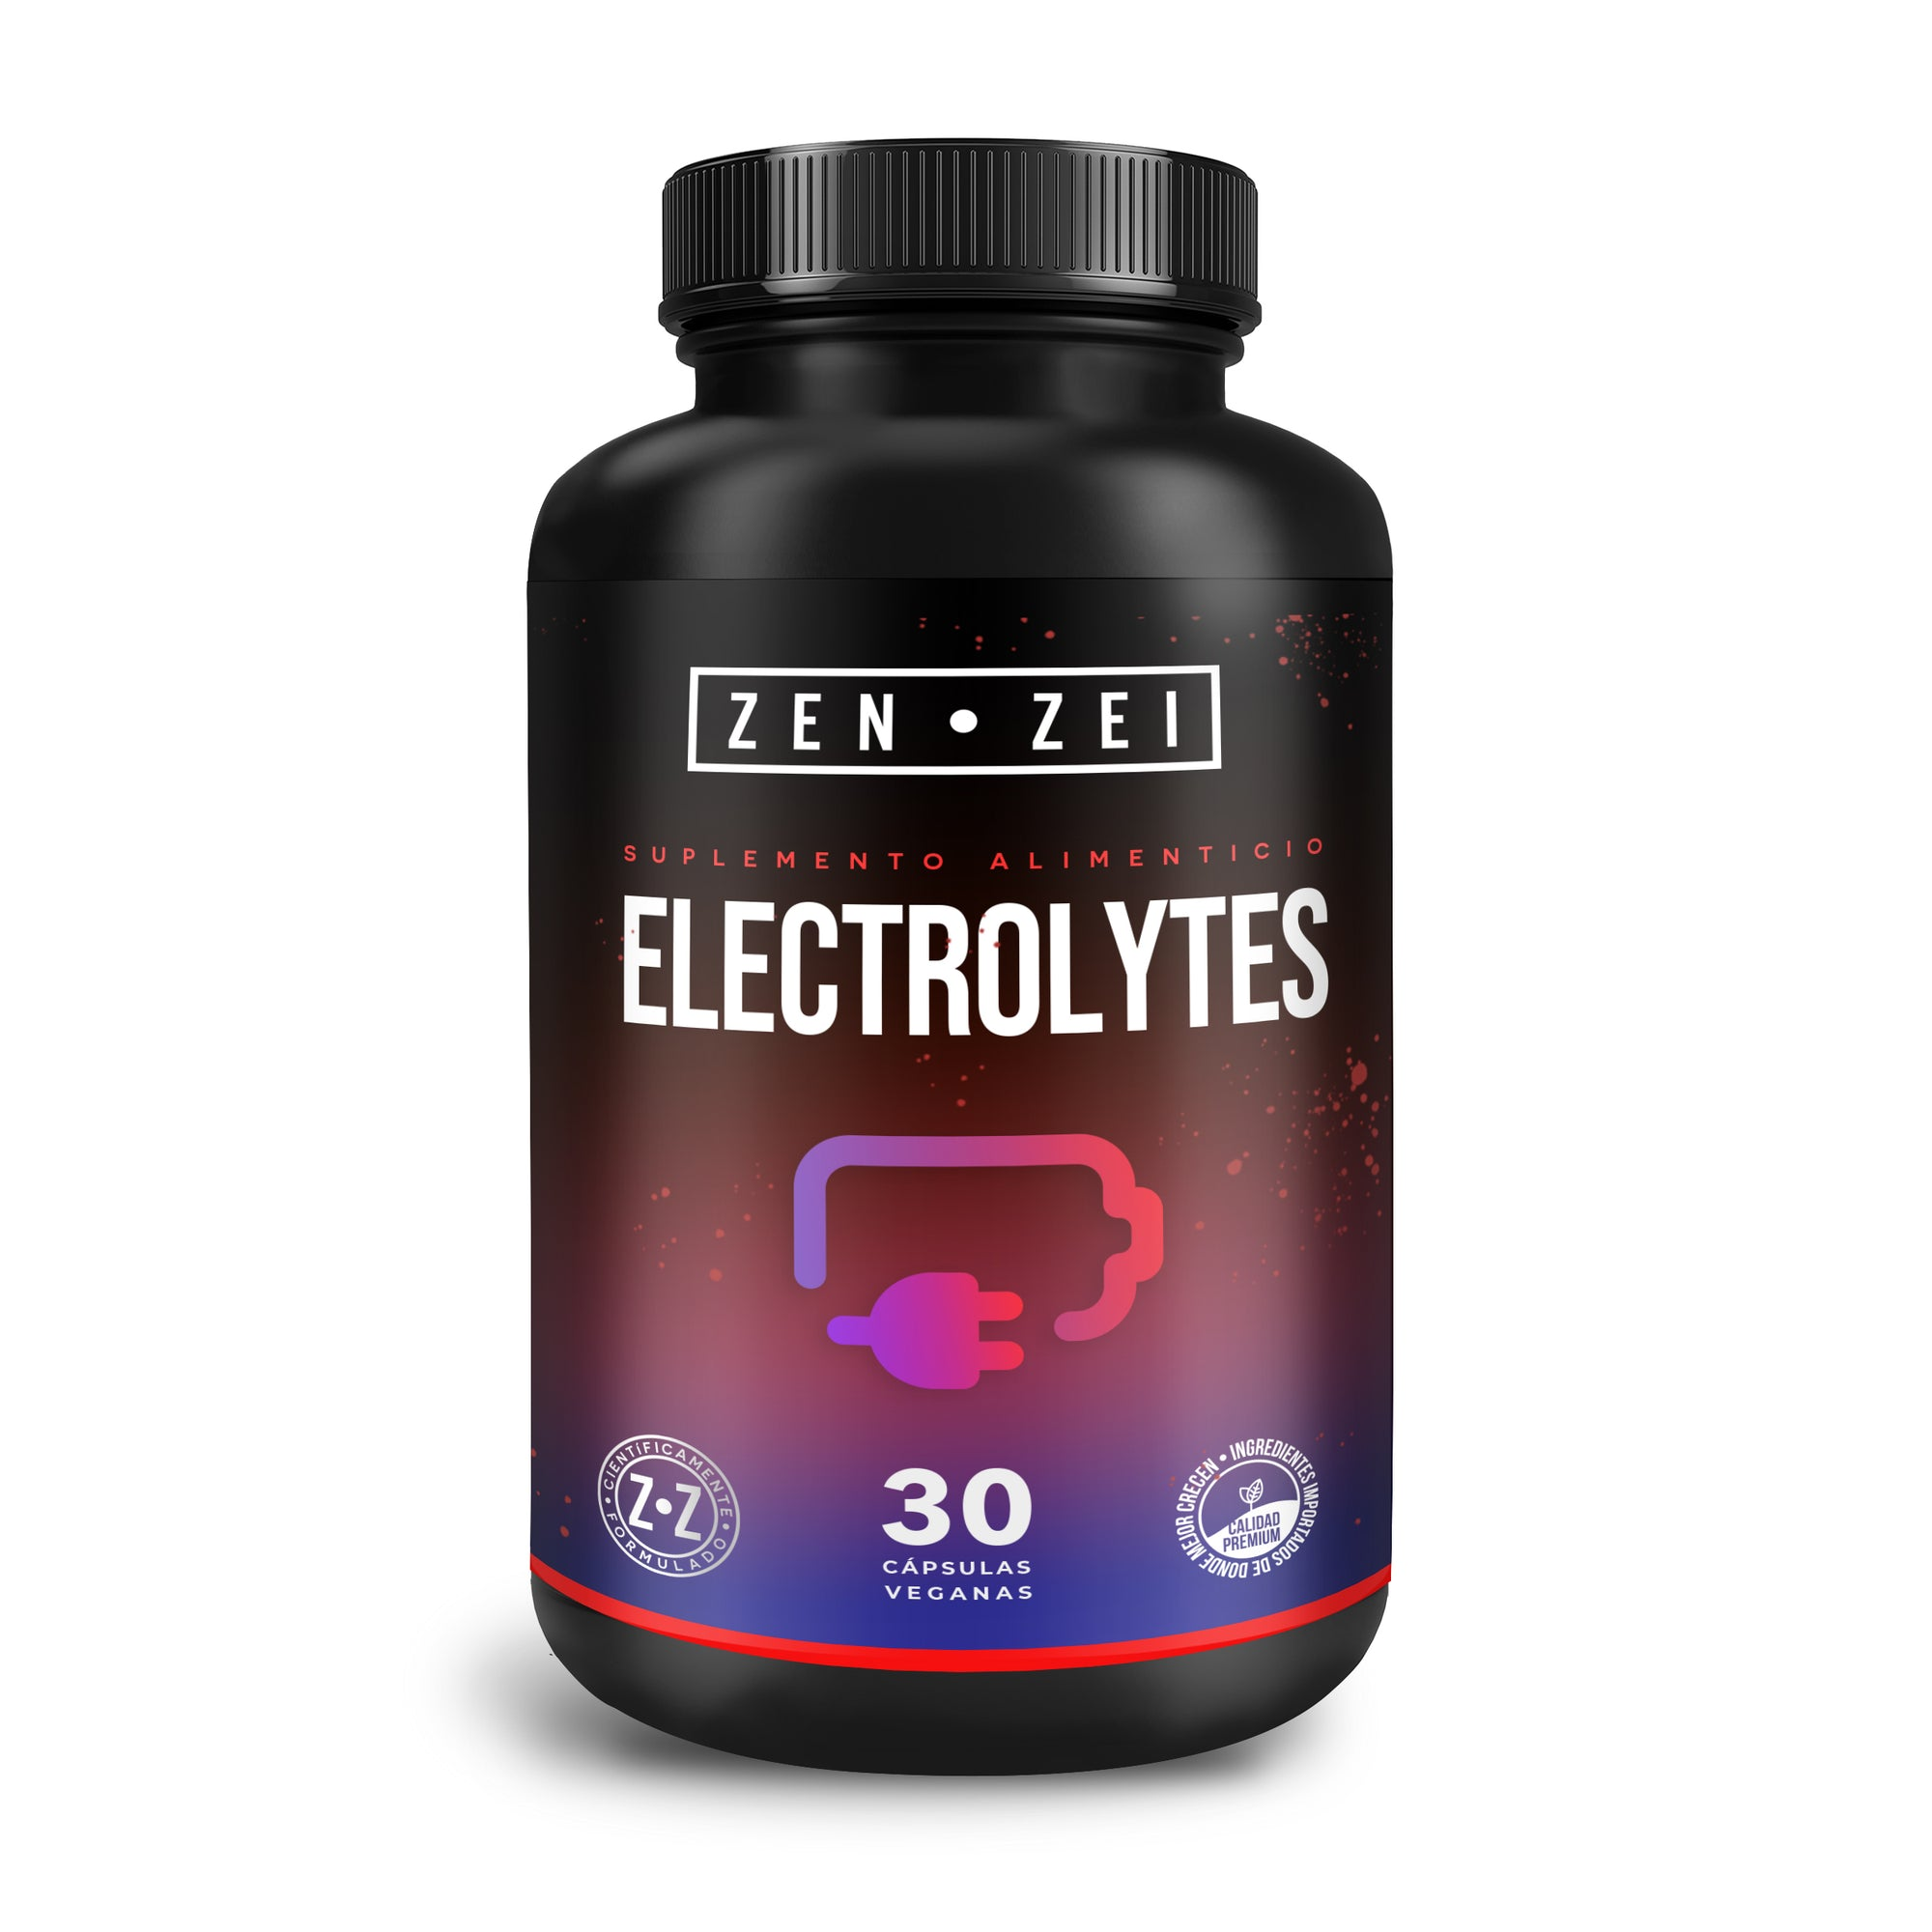 ADVANCED ELECTROLYTES